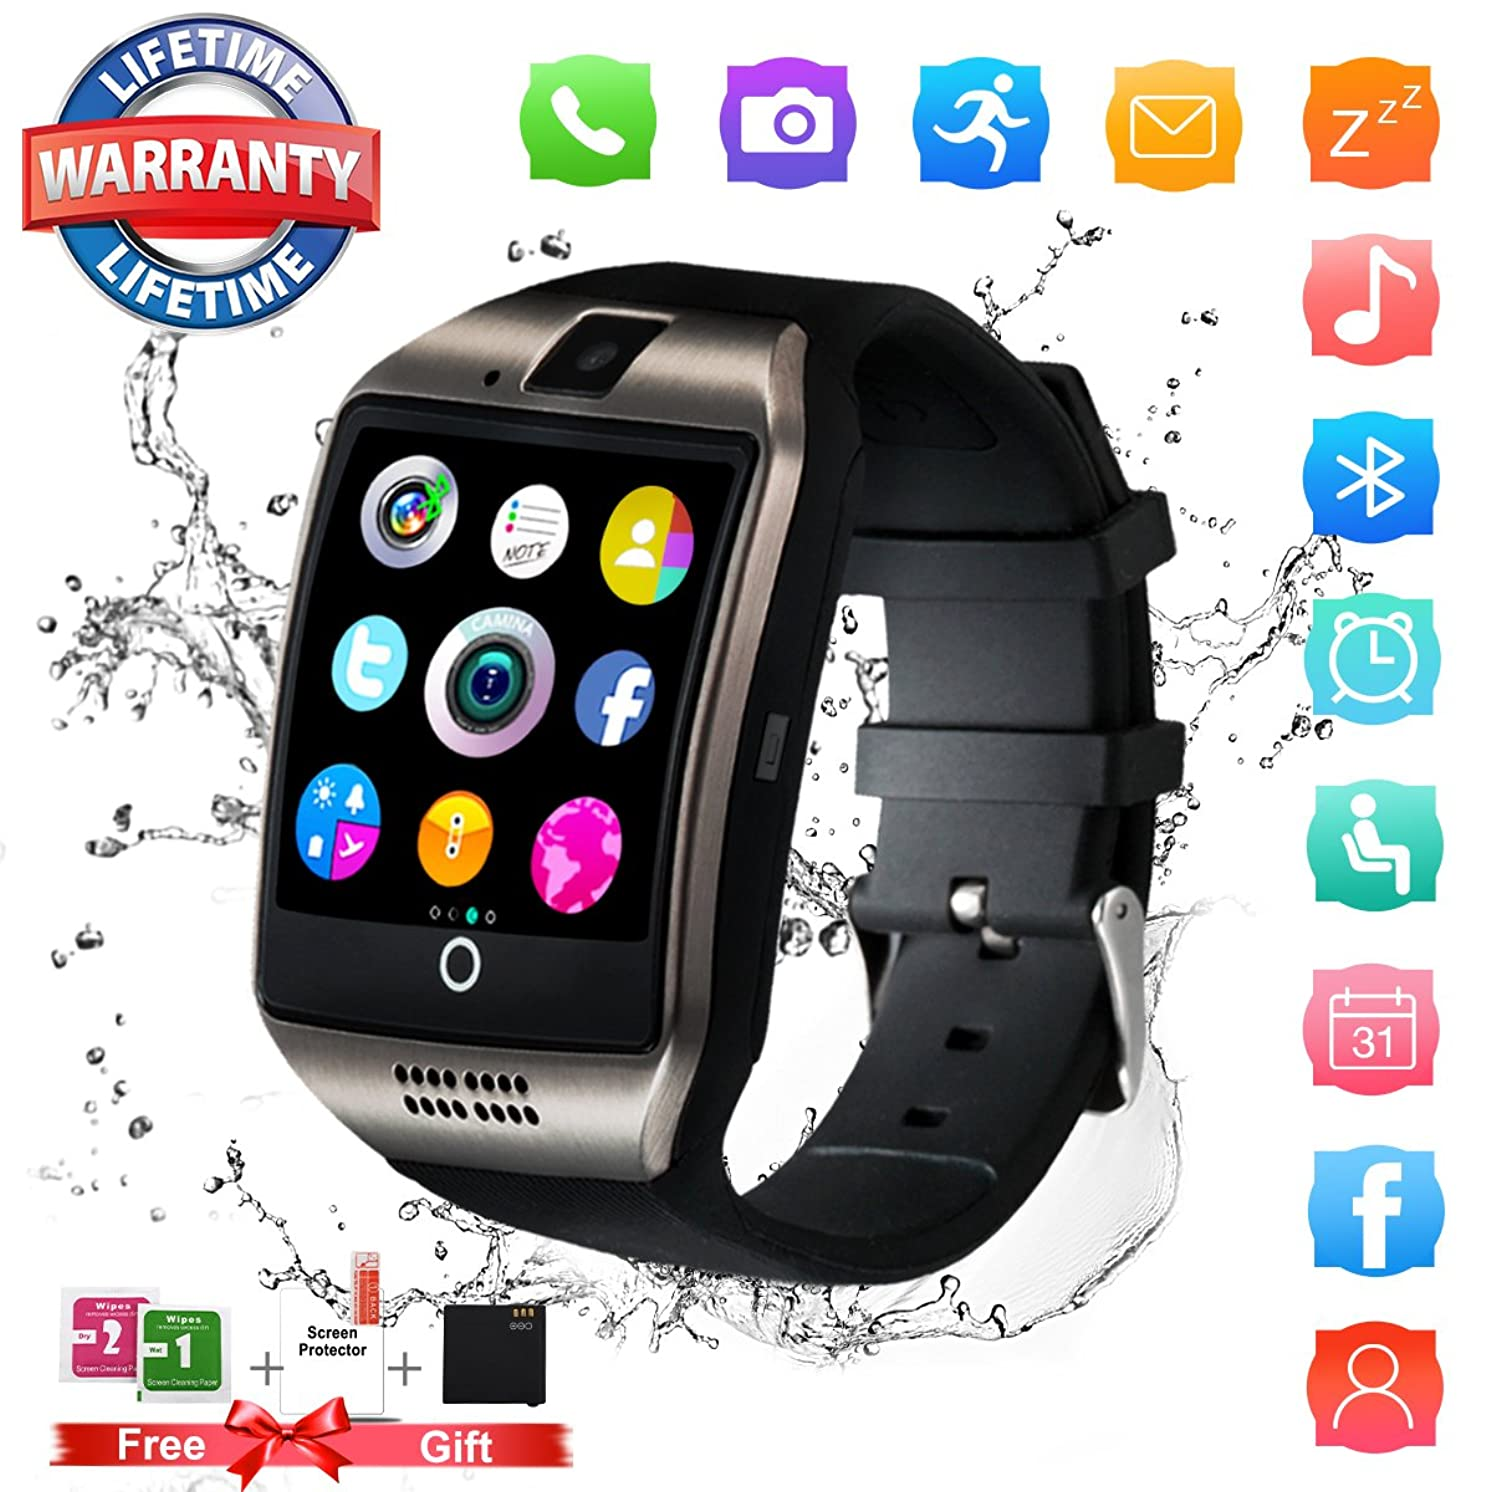 Smart Watch,Bluetooth Smartwatch Touch Screen Wrist Watch with Camera/SIM Card Slot,Waterproof Smart Watch Sports Fitness Tracker Compatible with Android Phones XS XR 8 7 Plus Samsung Huawei Black